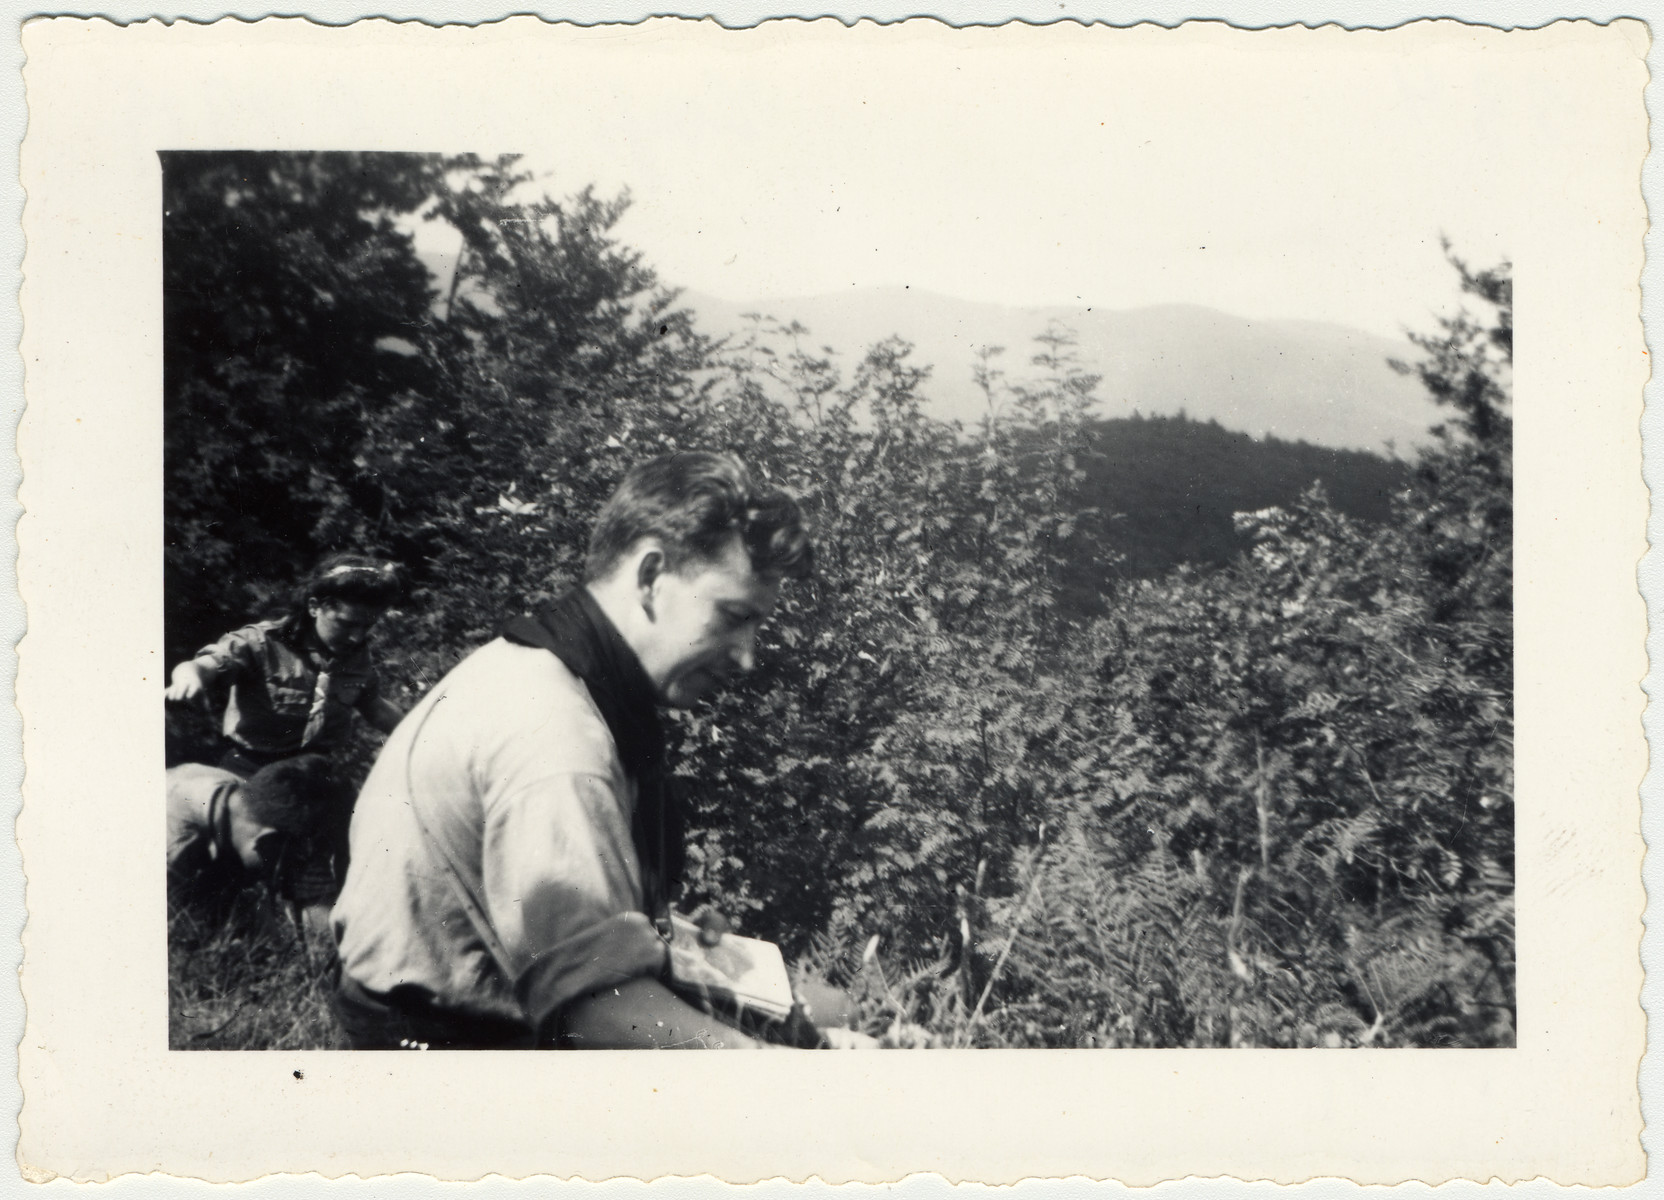 Aryeh Gelbard, a member of the Zionist movement, picks wild berries off the bushes.